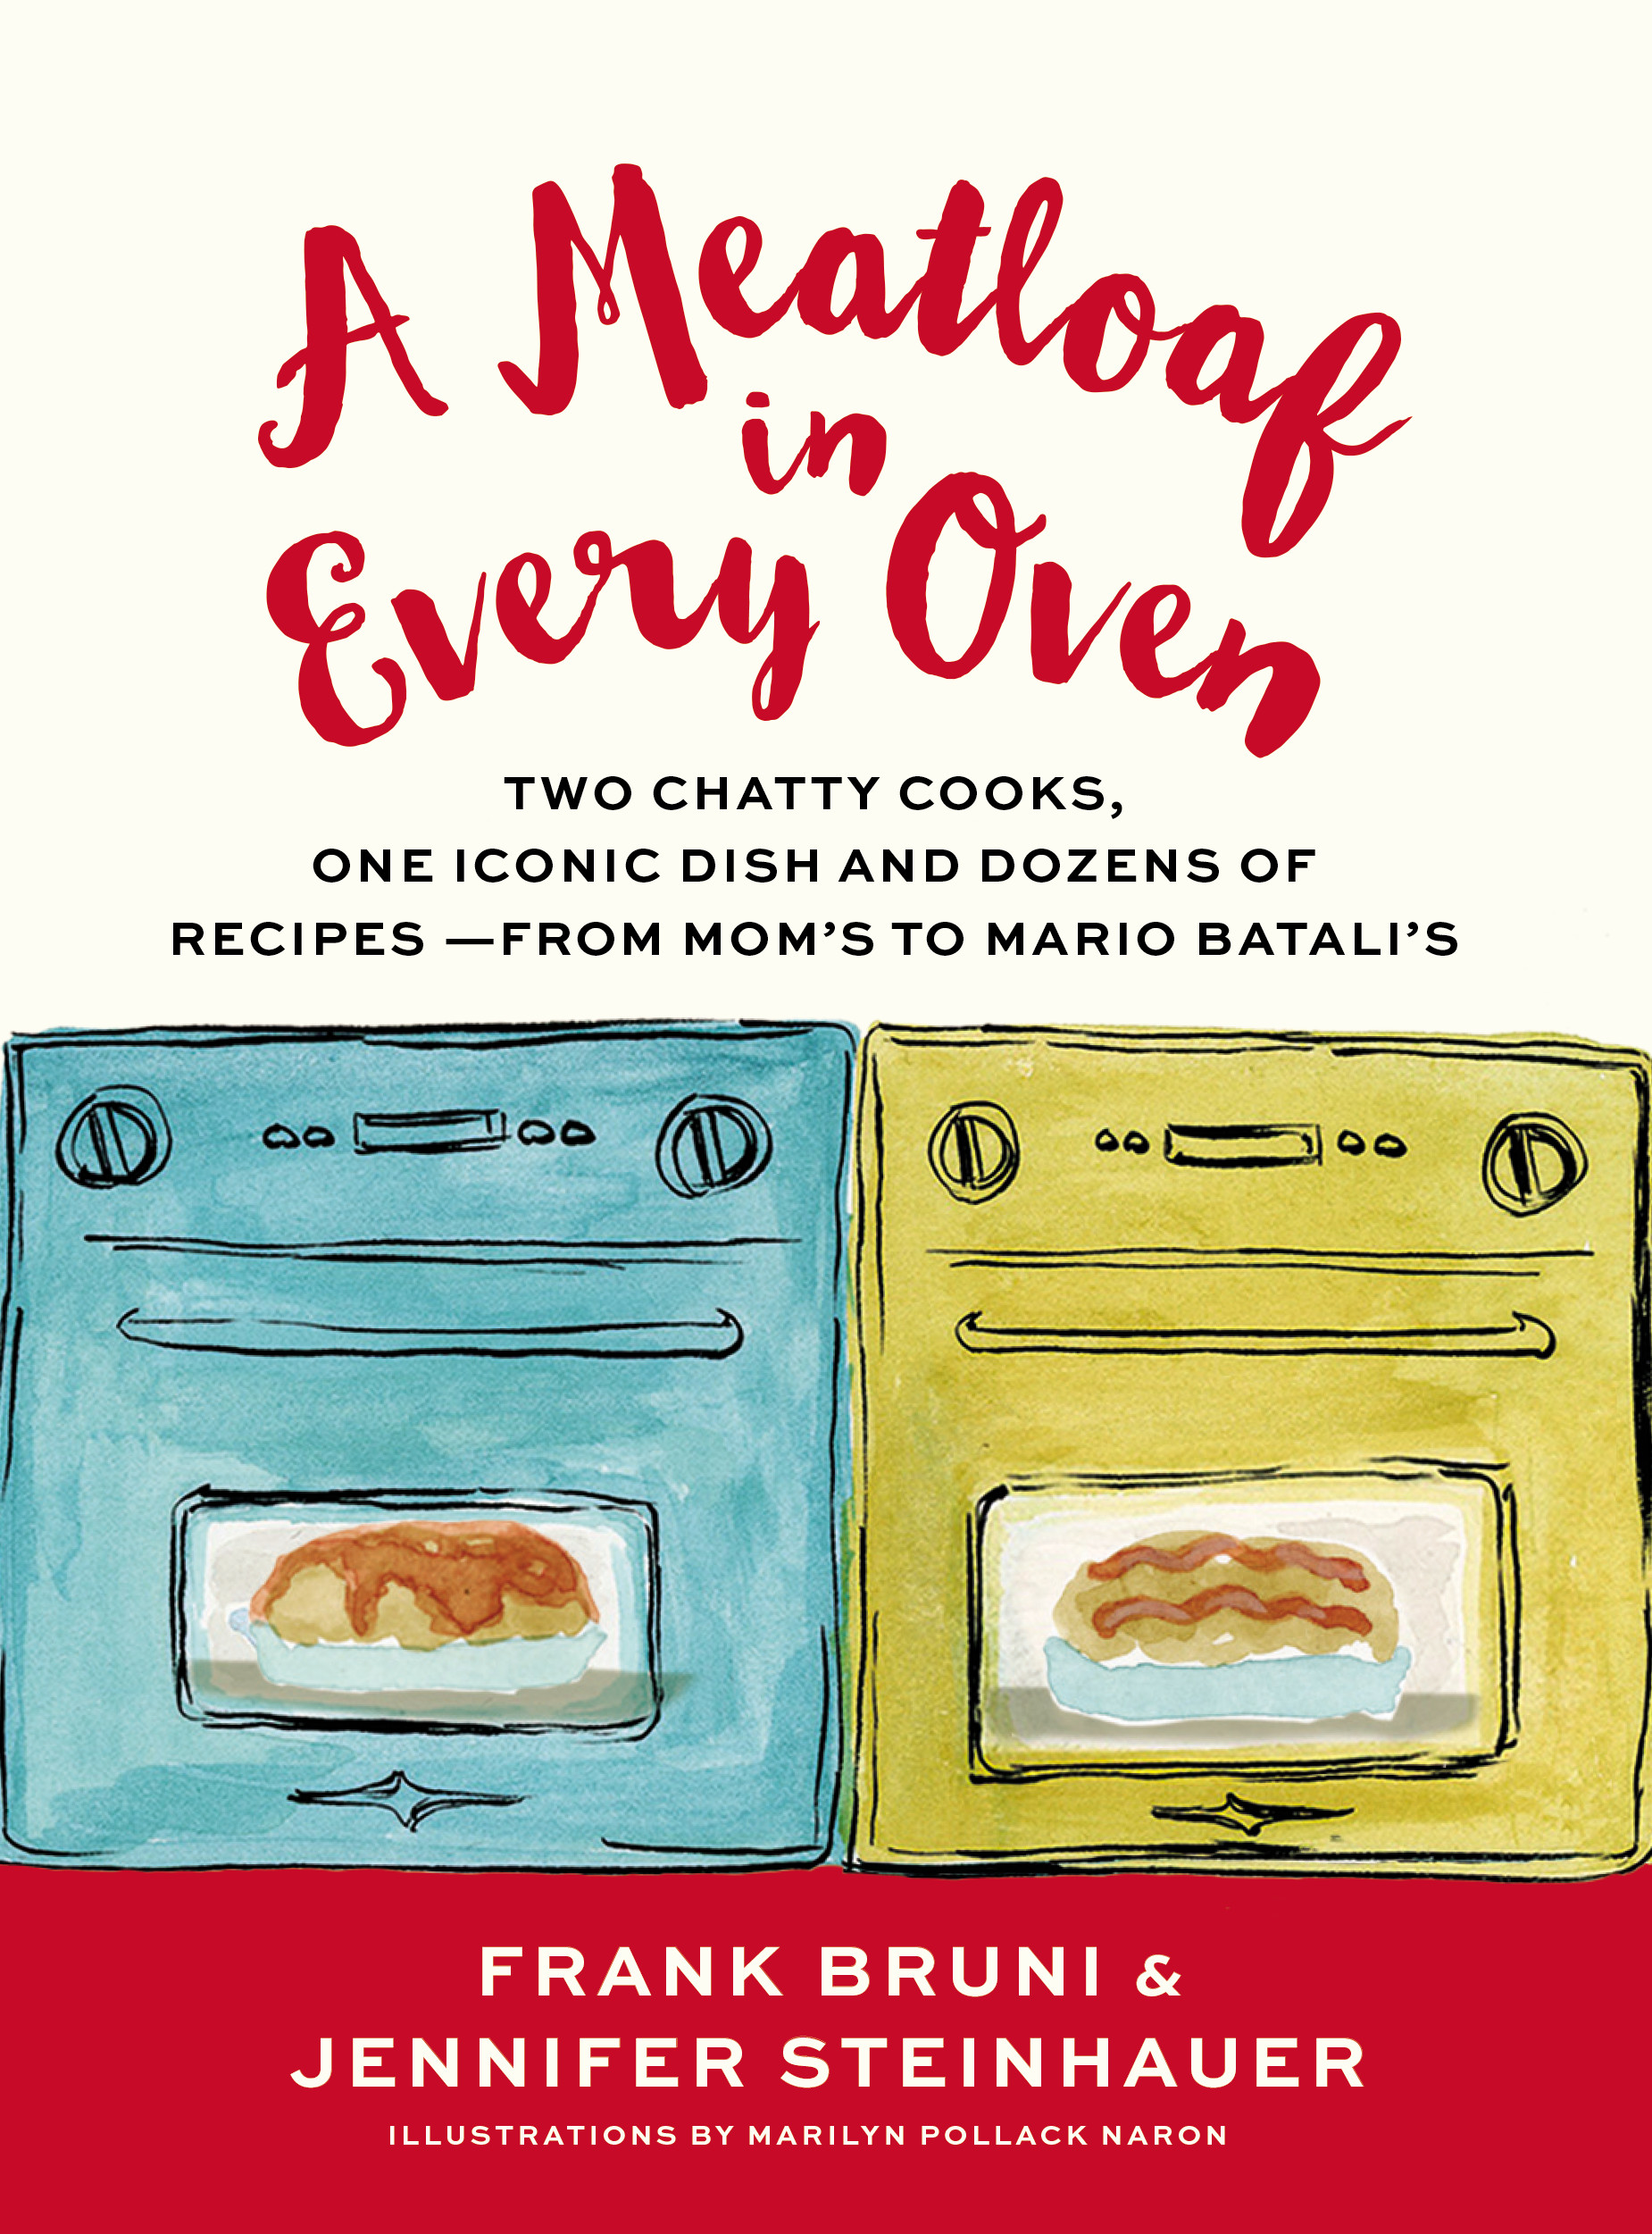 Book Launch: A Meatloaf in Every Oven by Frank Bruni and Jennifer Steinhauer